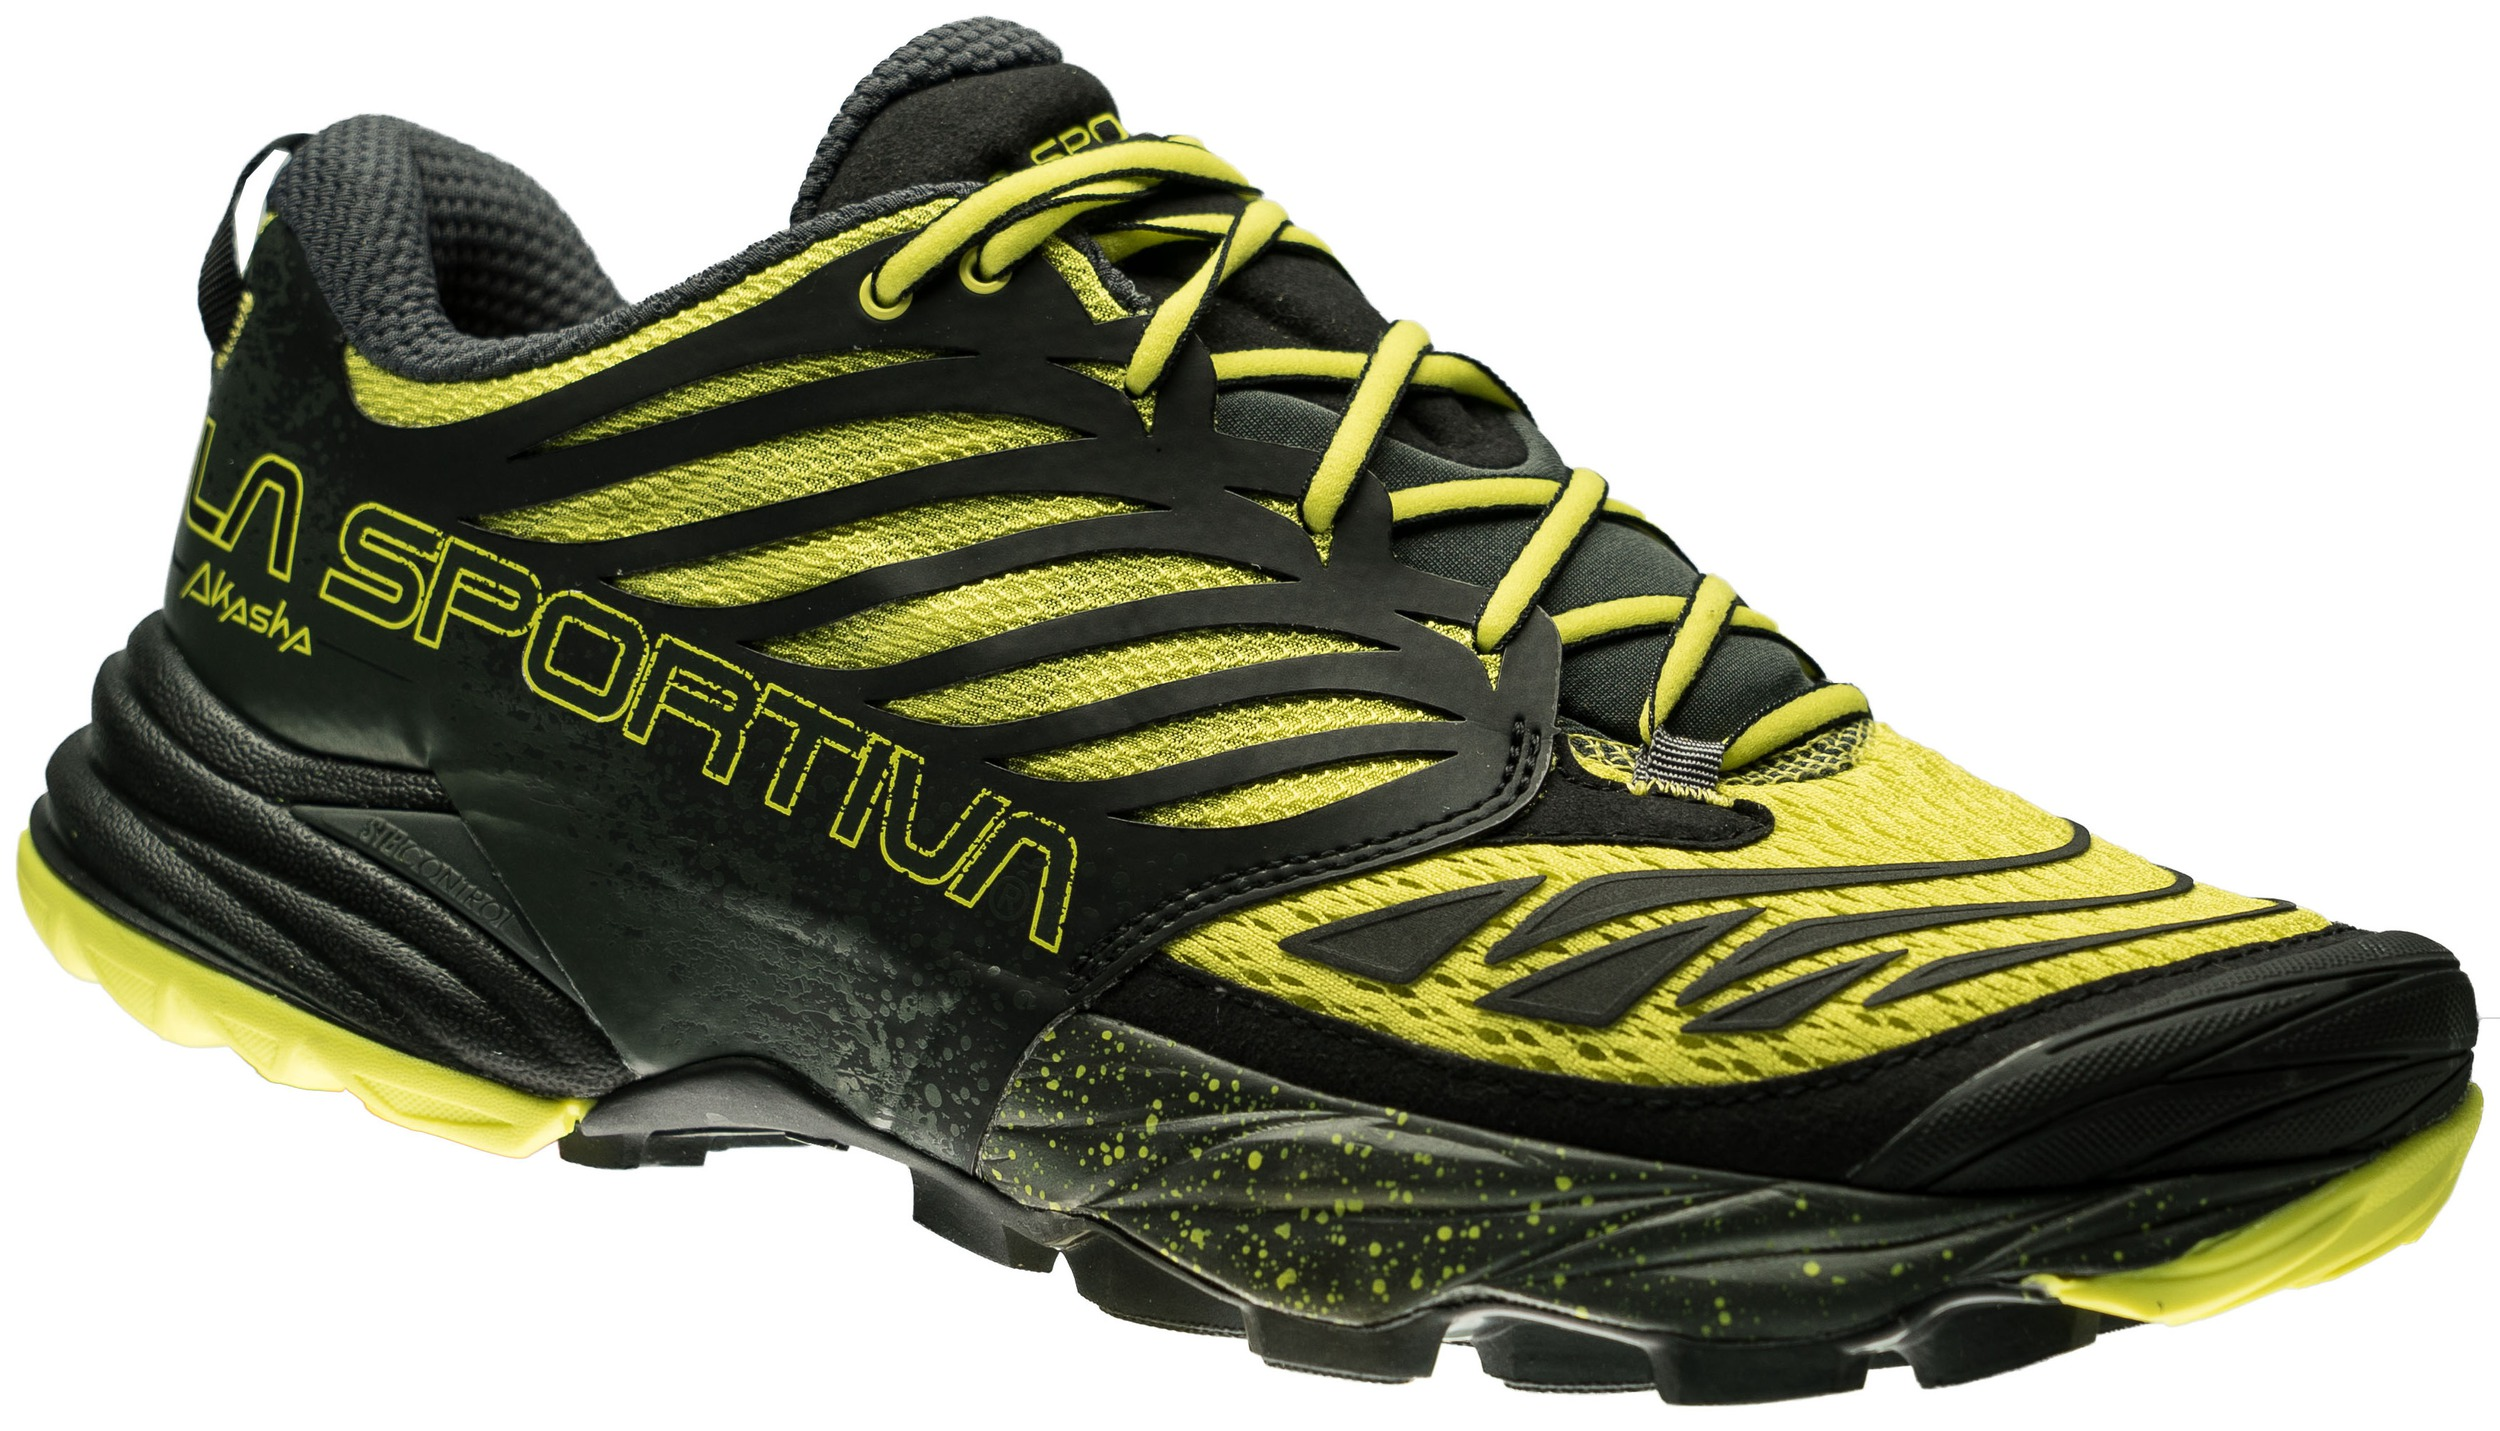 Sportiva Sportiva Chaussures Brooks Chaussures Brooks Test Sportiva Test Chaussures Chaussures Brooks Brooks Test Test tshQxBdrC